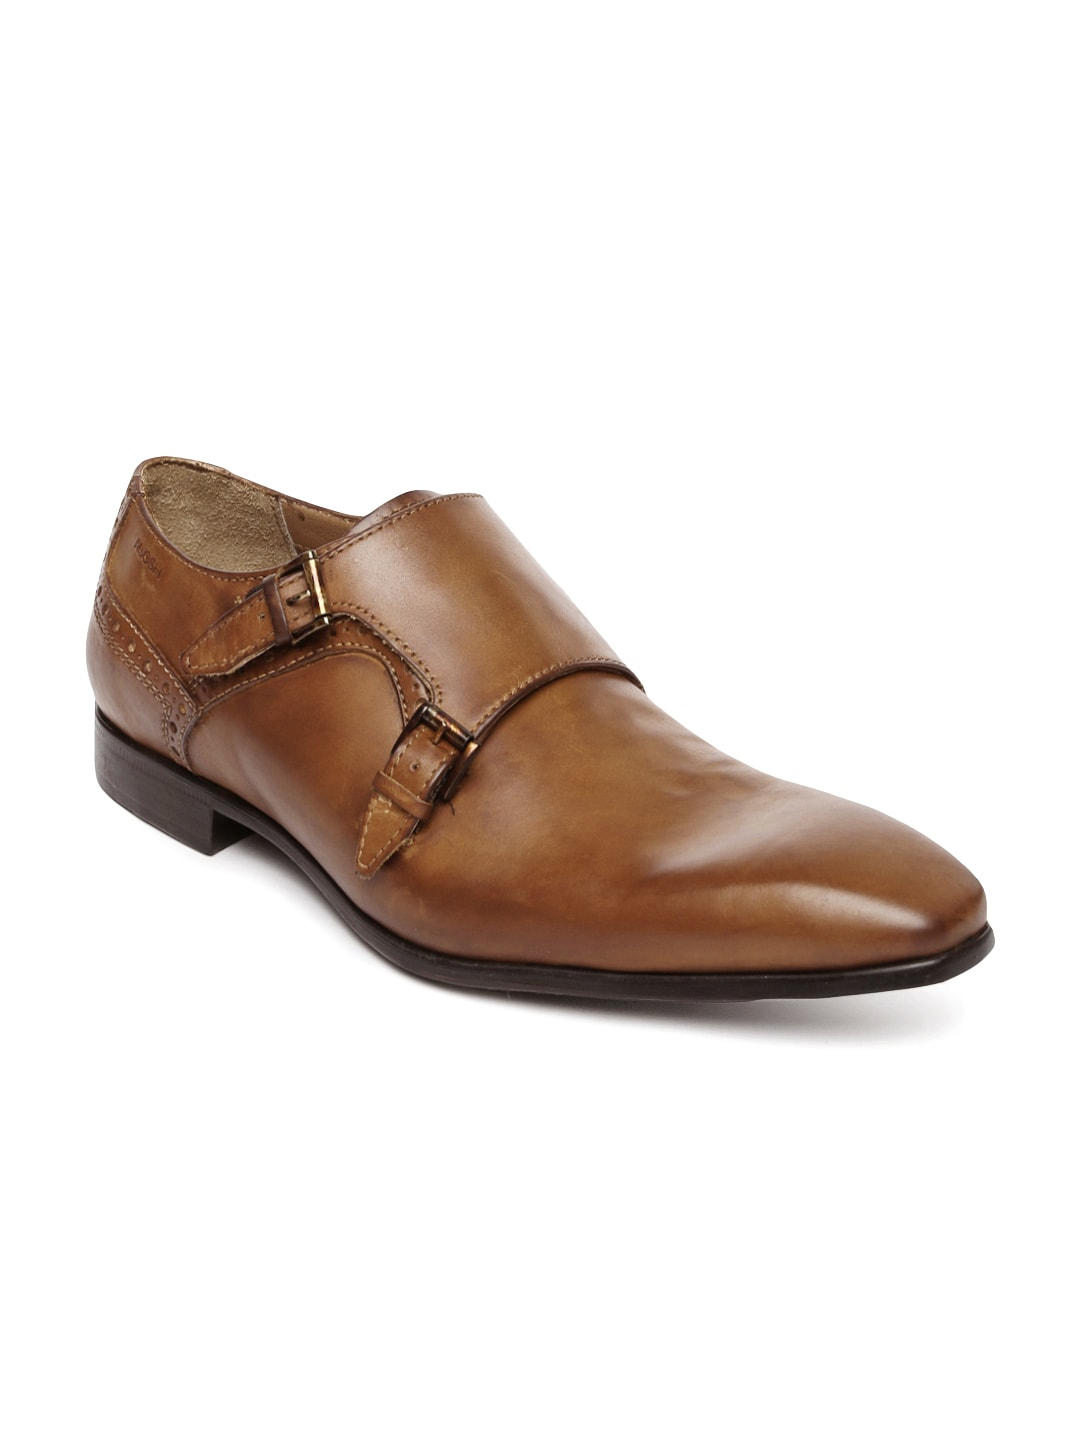 Ruosh Occasion Men Tan Brown Leather Monk Shoes